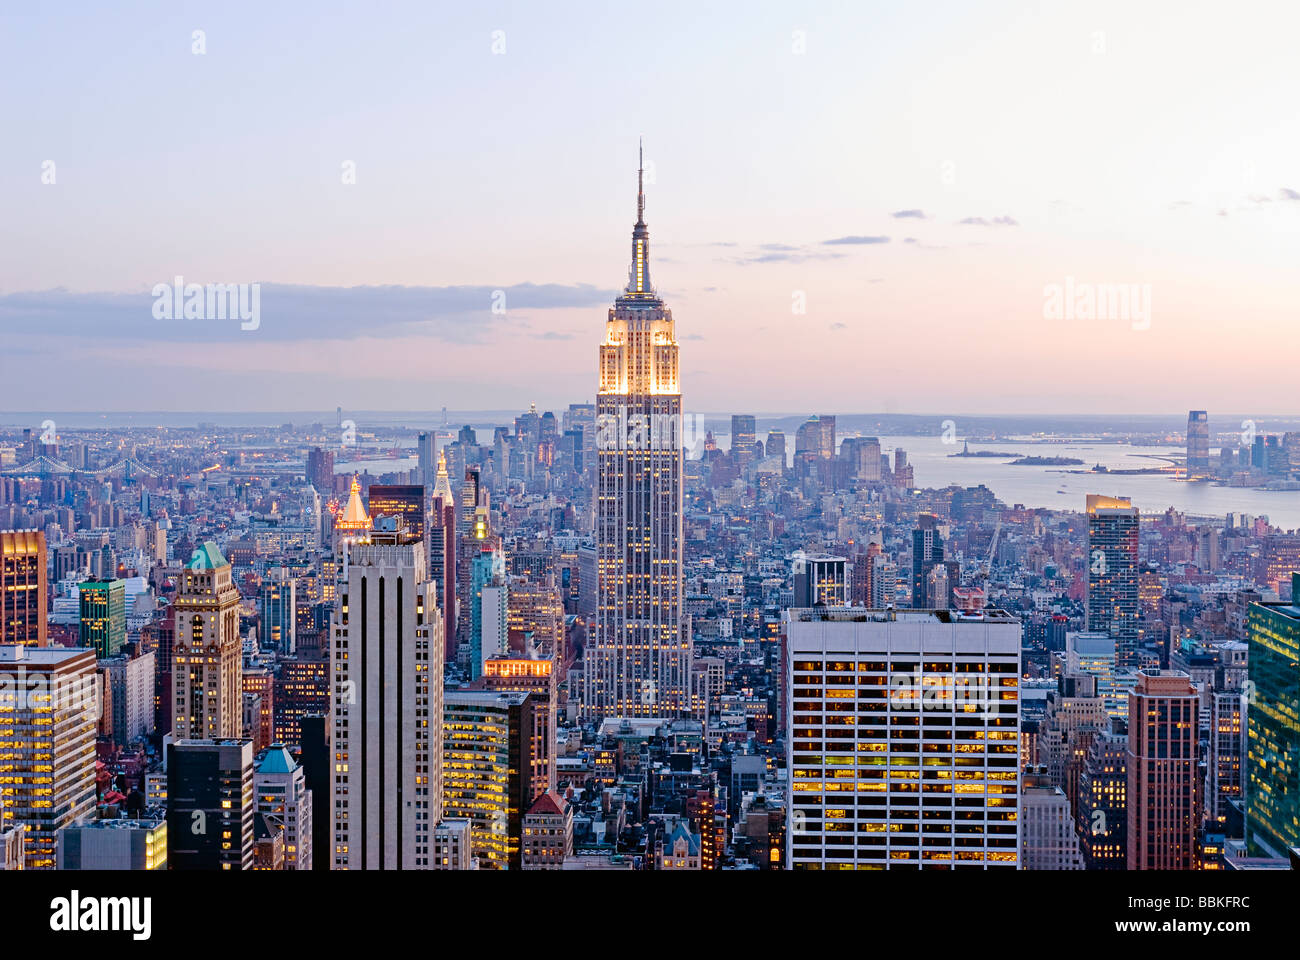 File:Empire State Building Aerial.JPG - Wikimedia Commons